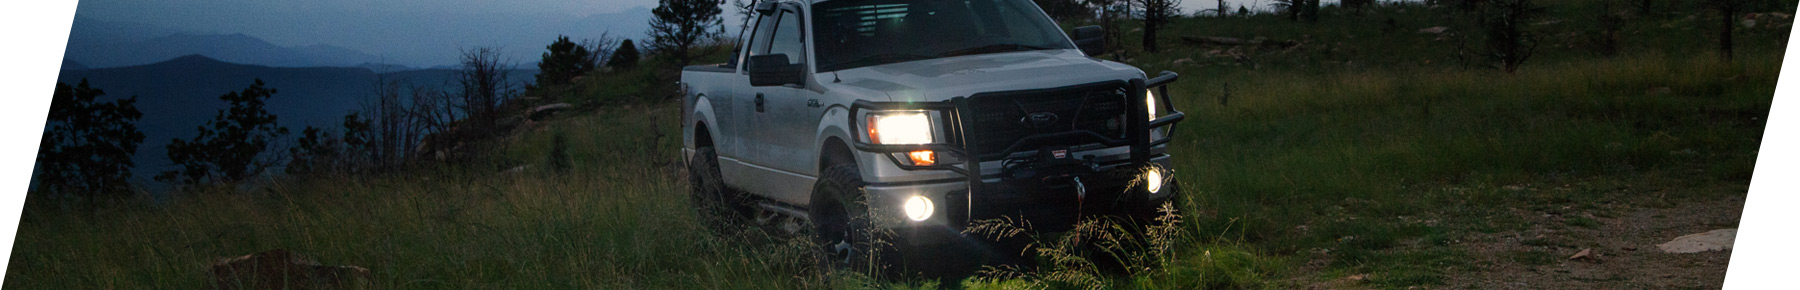 2009-2014 F150 Lighting Upgrades